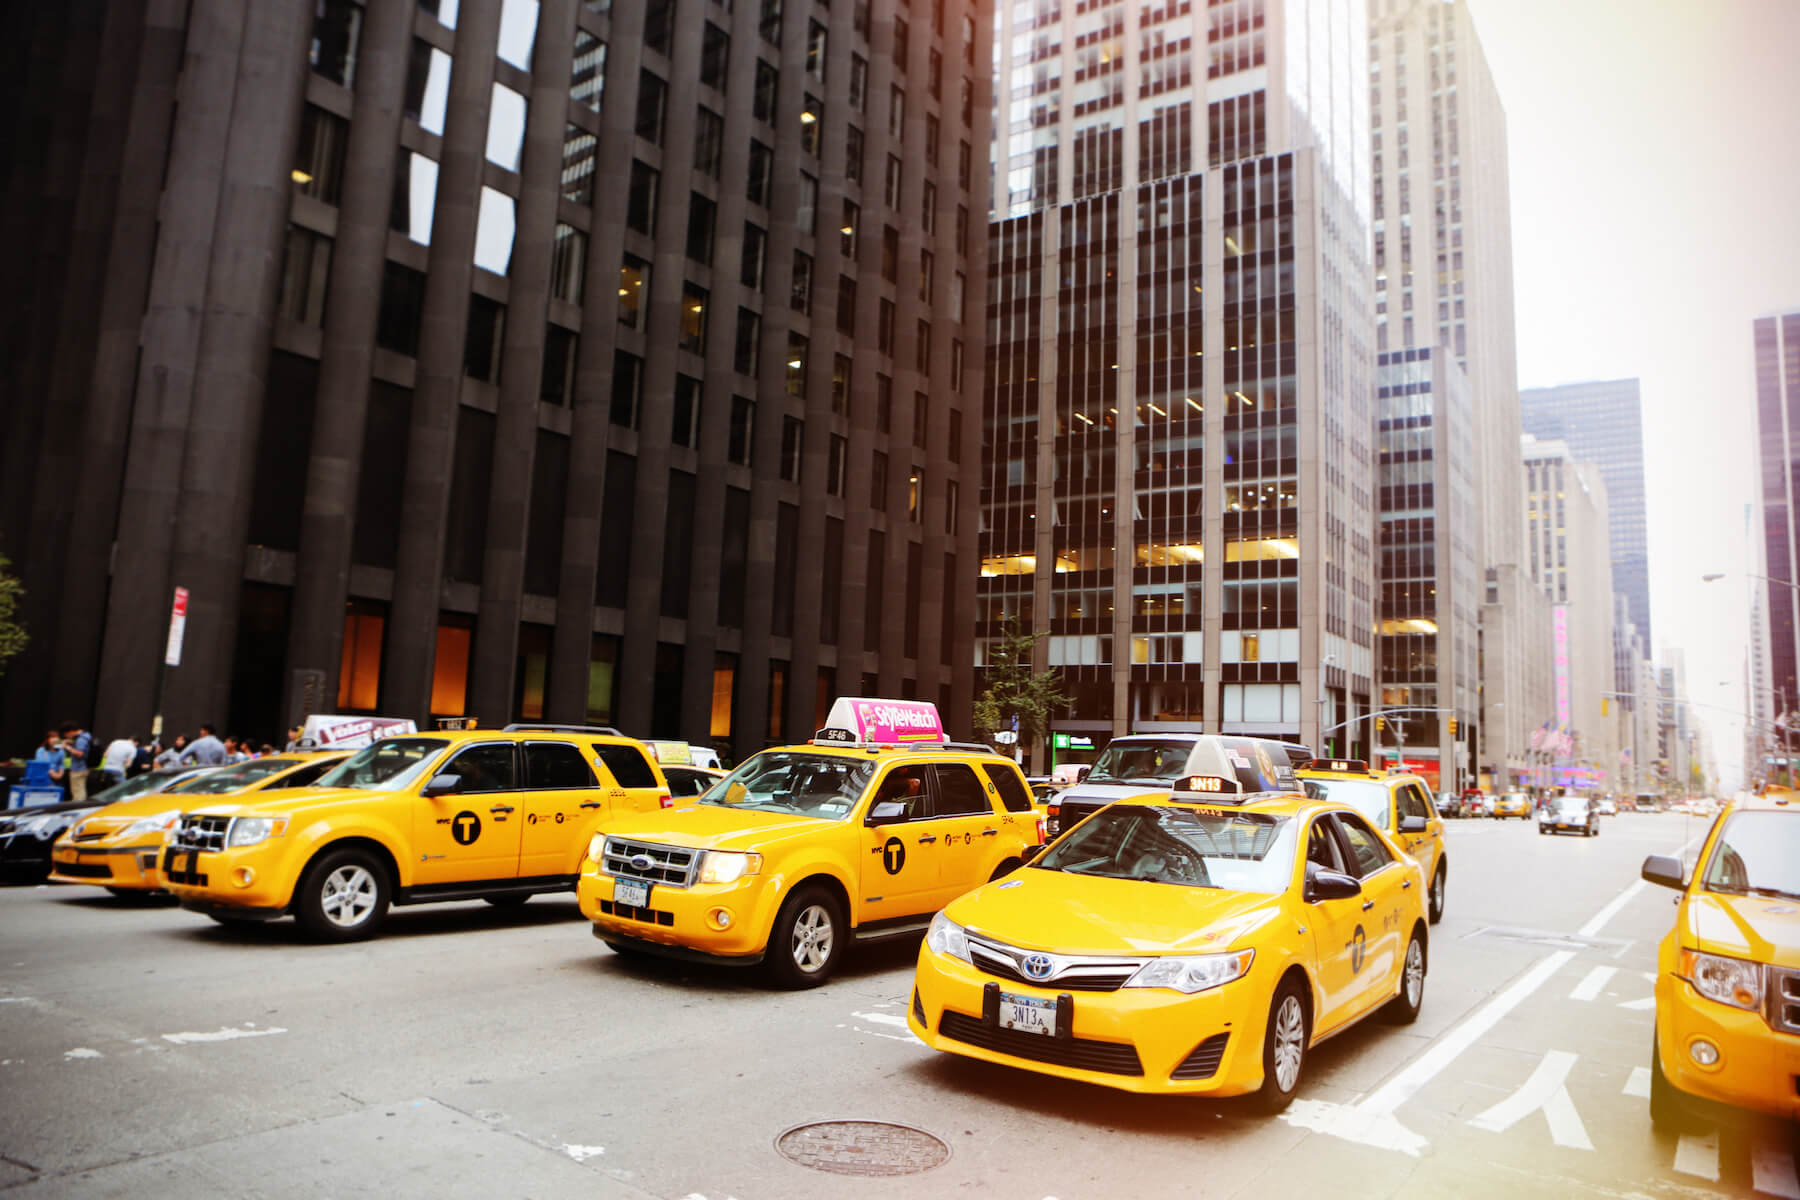 2-Life-of-Pix-free-stock-photos-NY-taxi-city-downton-yellow-leeroy